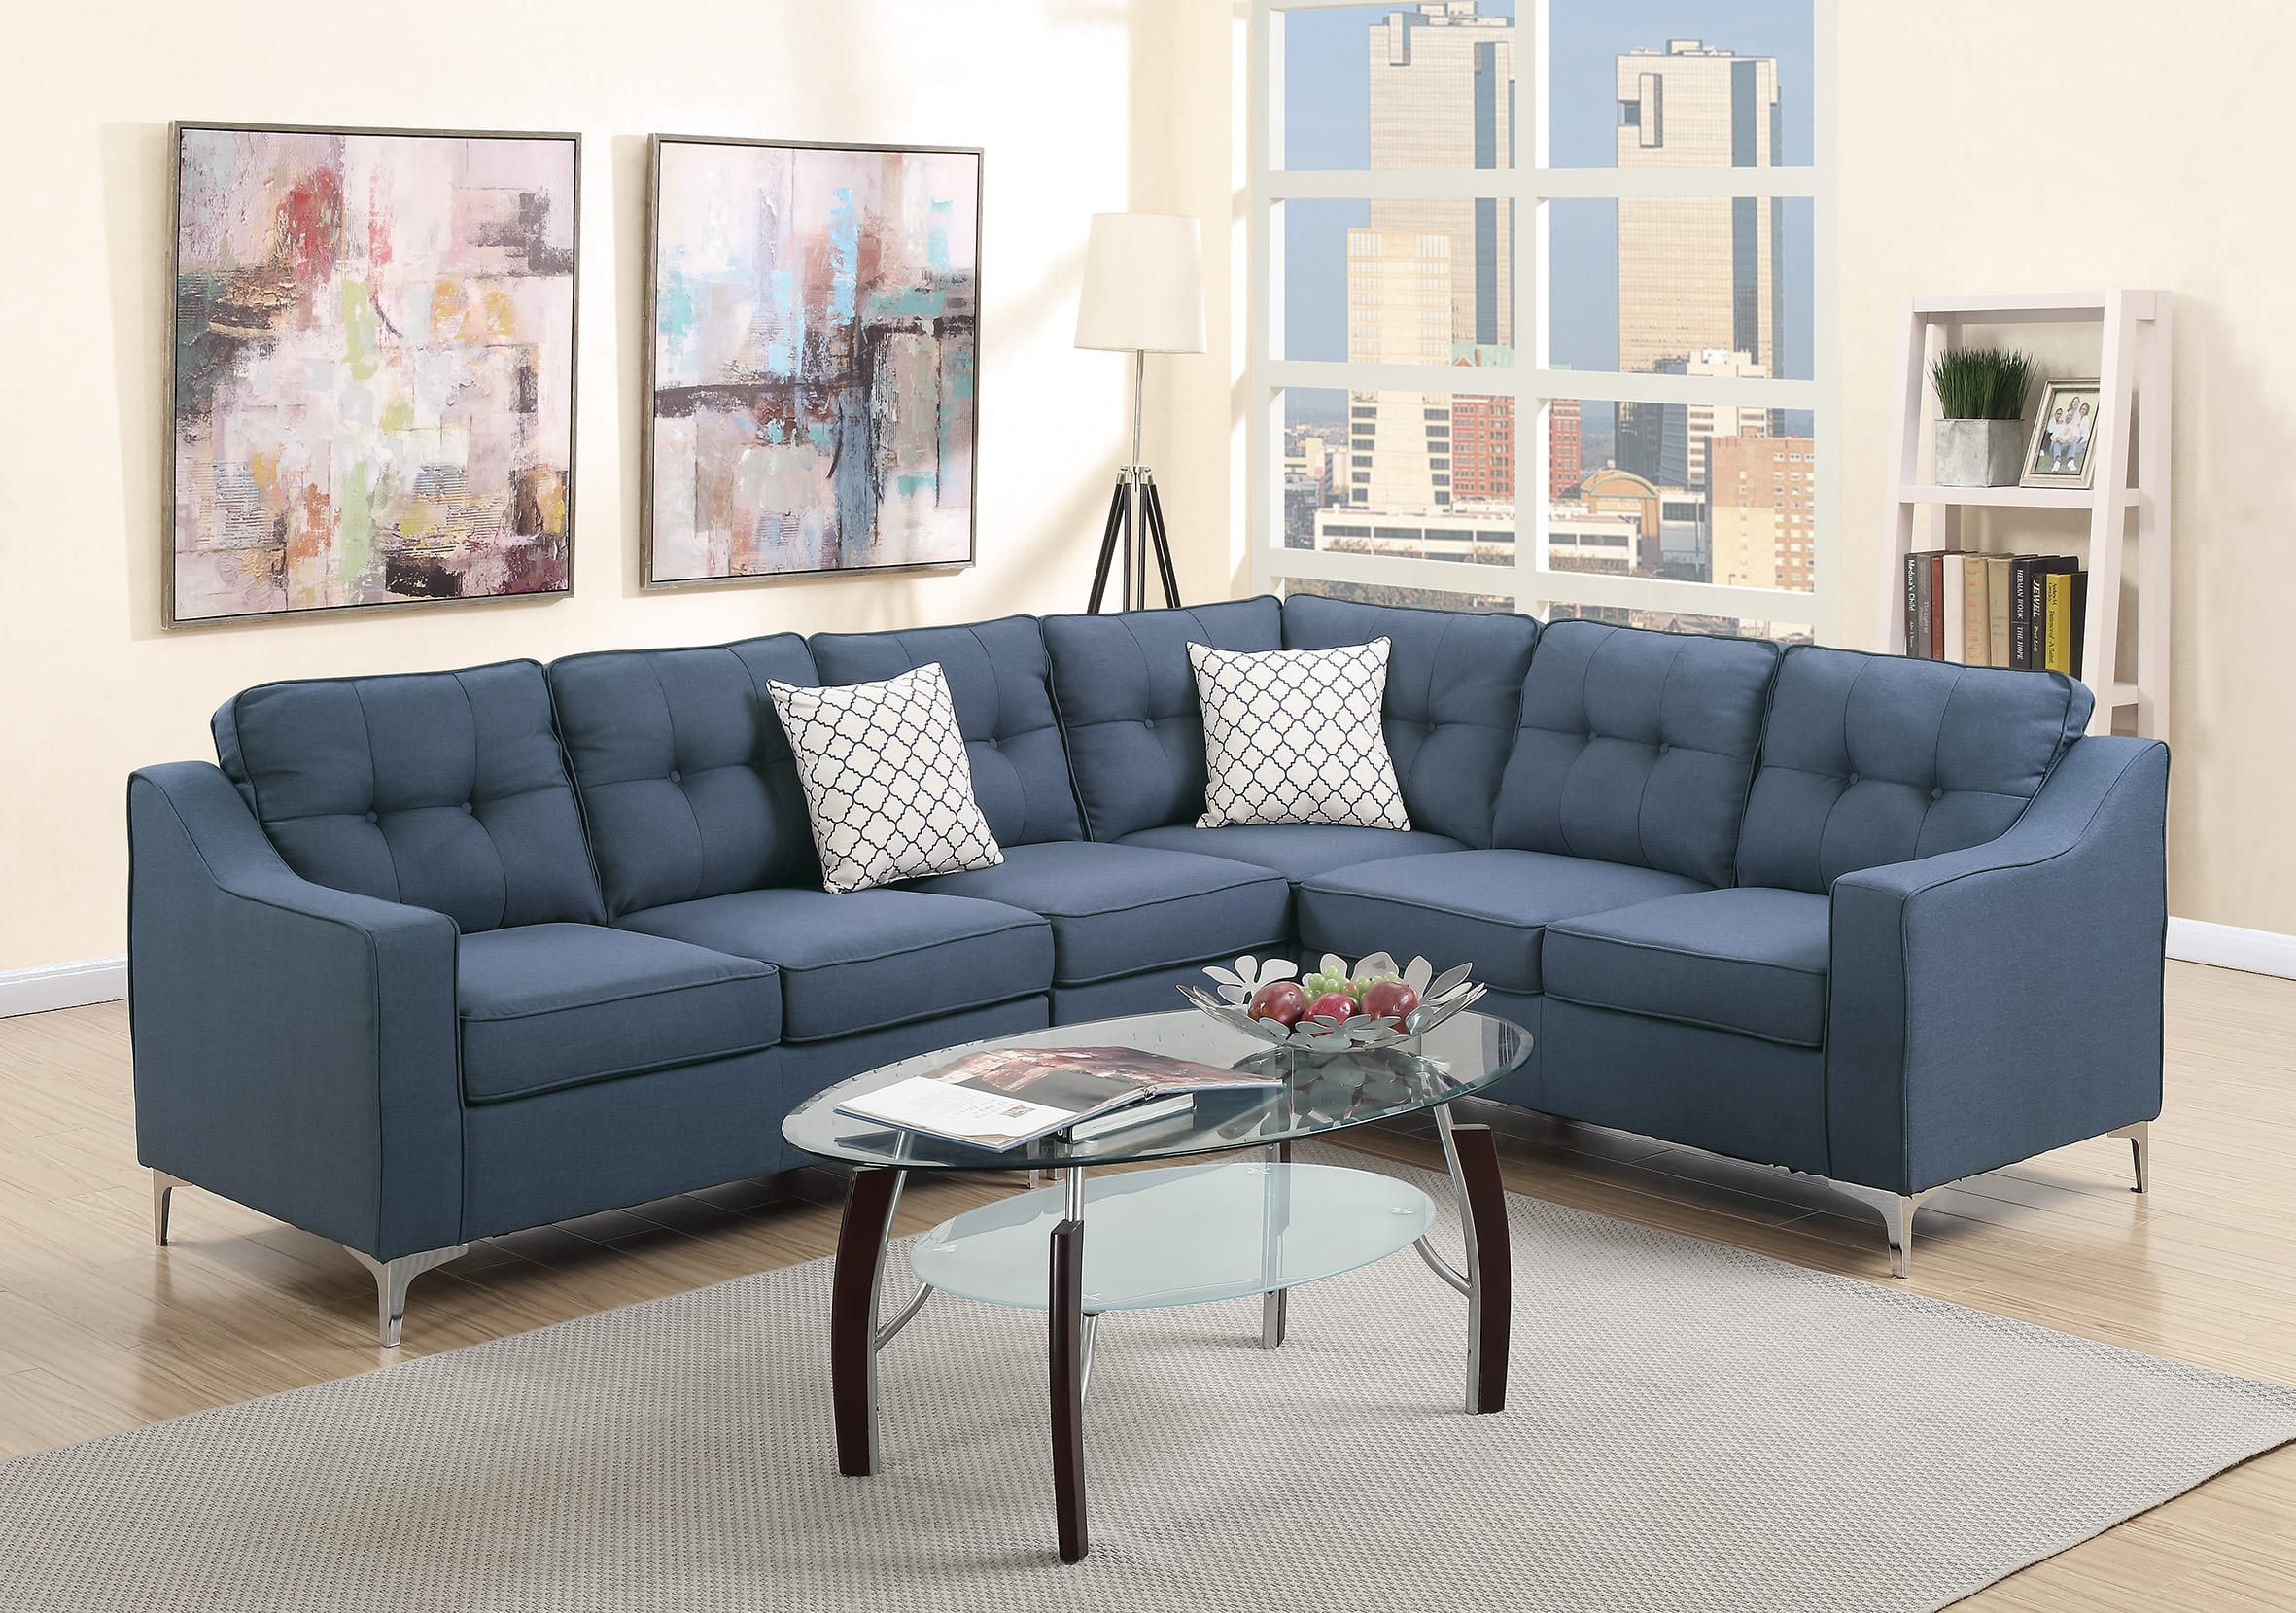 F6889 Navy 4 Pcs Sectional Sofa Set by Poundex